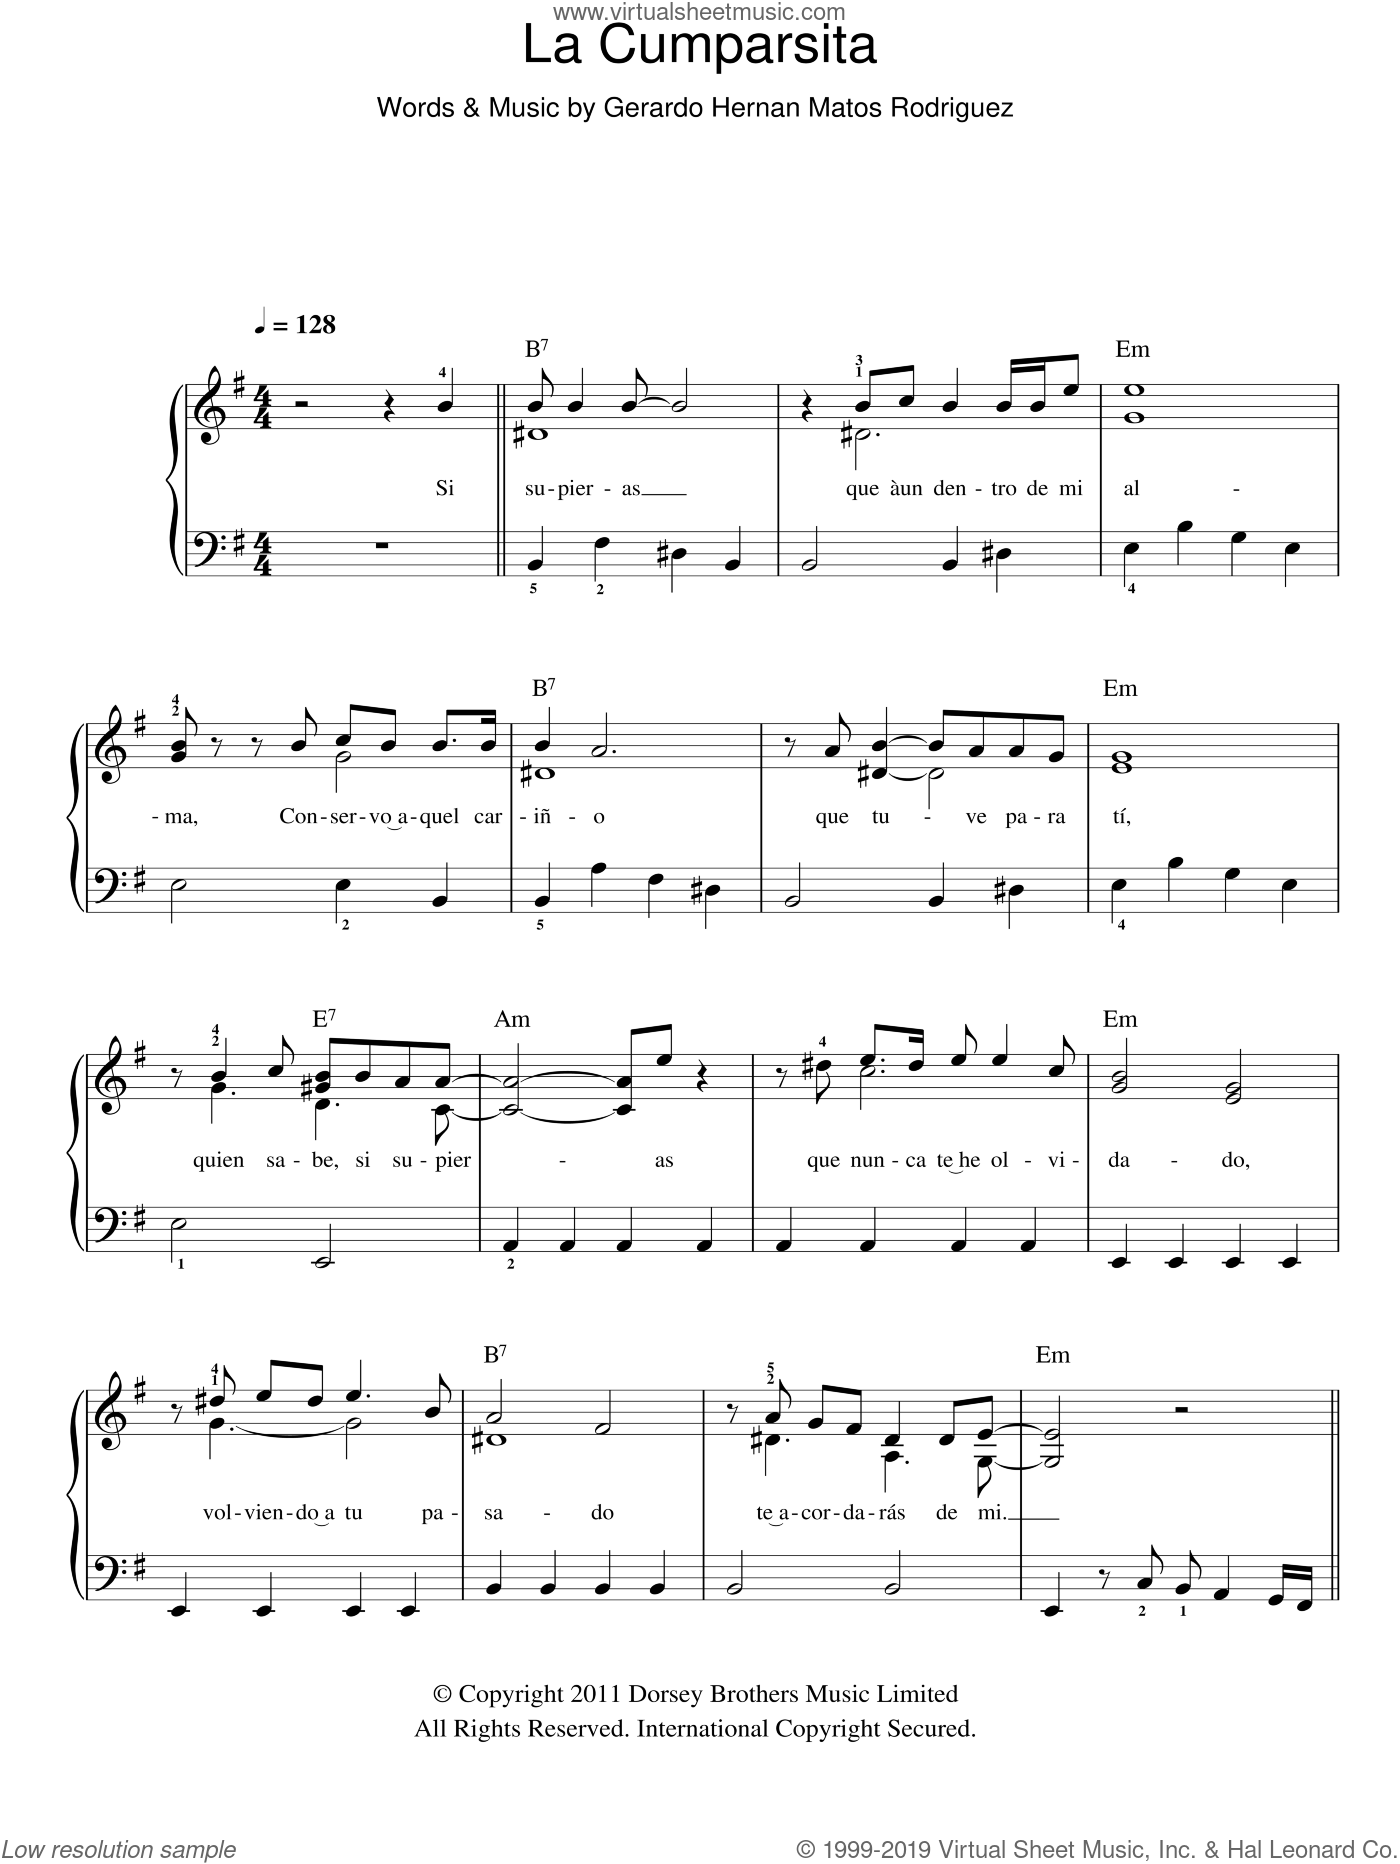 La Cumparsita sheet music for piano solo by Gerardo Hernan Matos Rodriguez, easy skill level